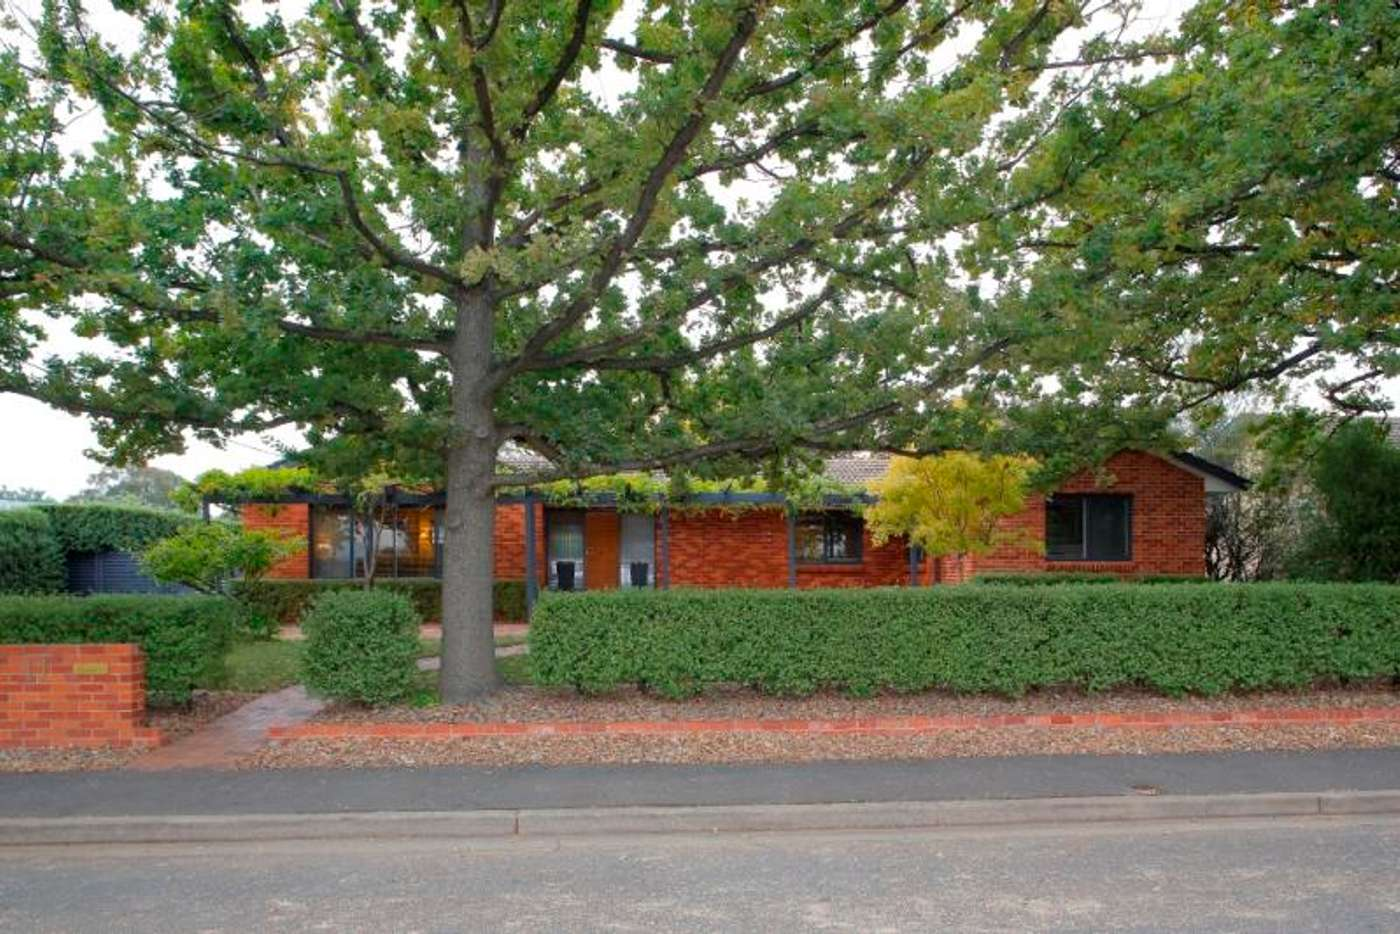 Main view of Homely house listing, 11 Leane Street, Hughes ACT 2605